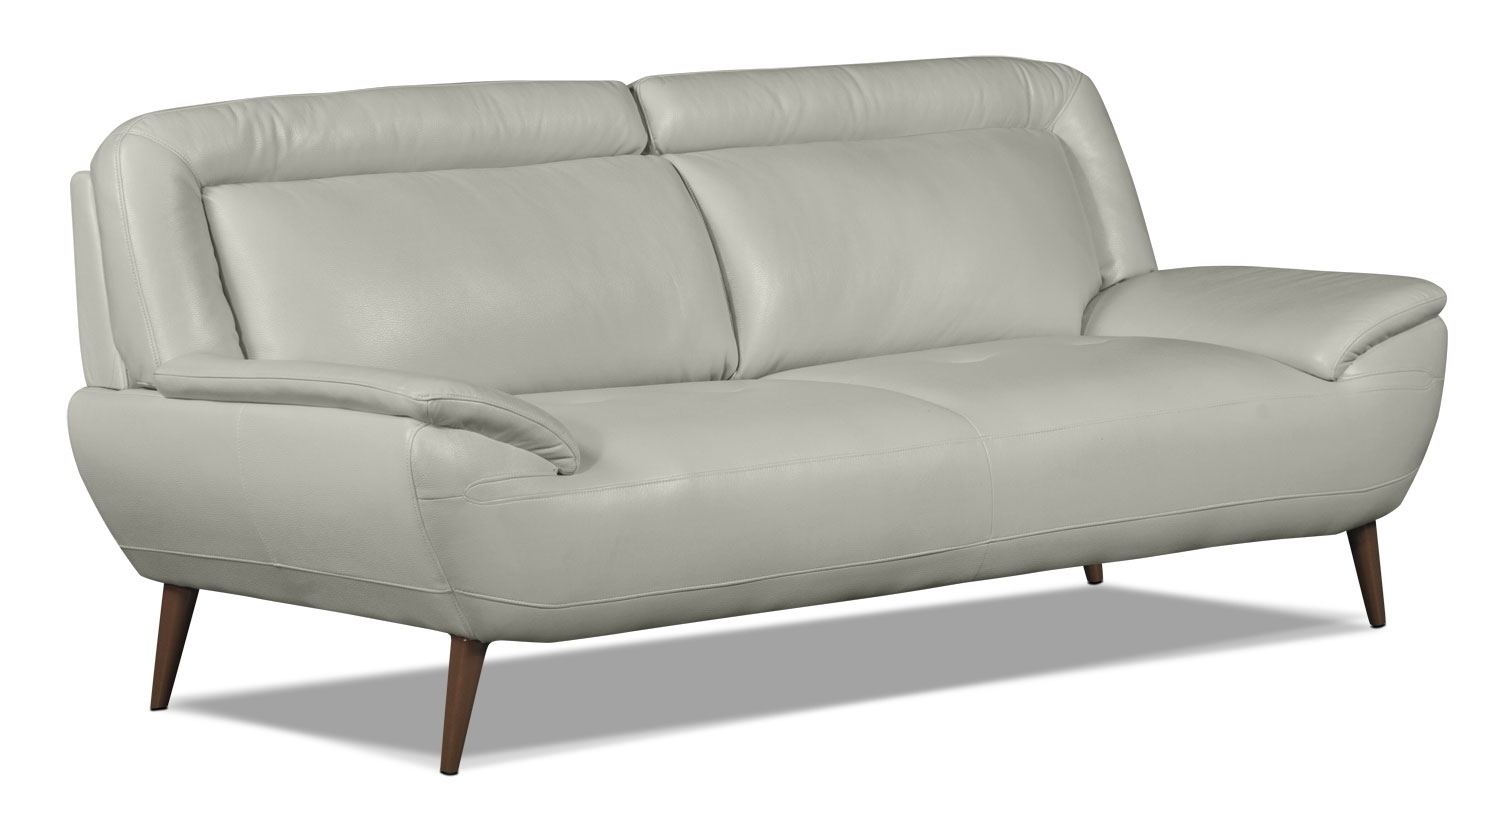 Cindy Crawford Sofa All Information Sofa Desain Ideas Within Cindy Crawford Sofas (Image 7 of 15)